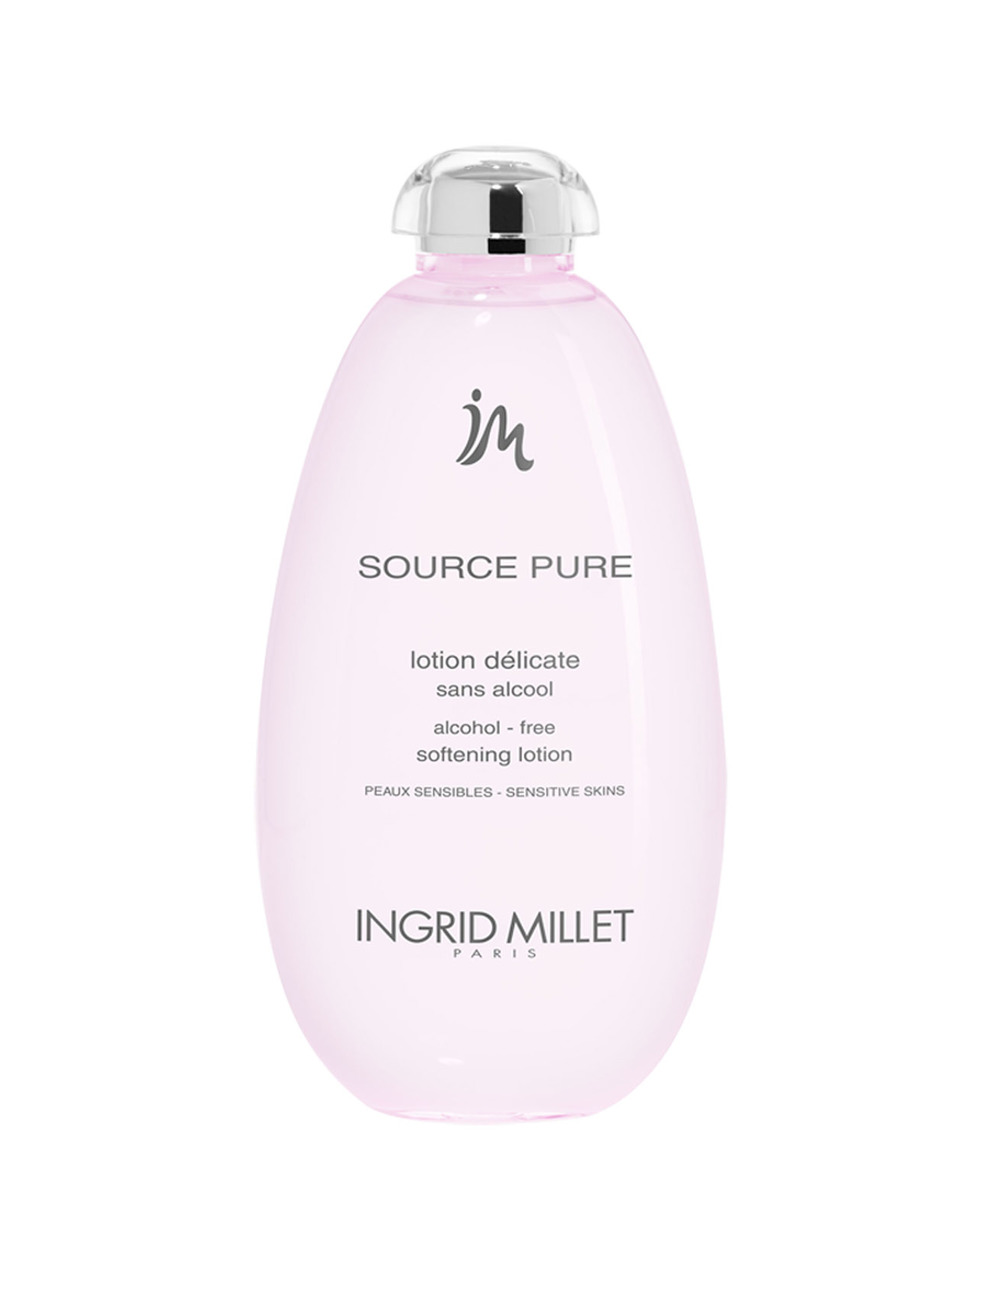 3-Lotion-Delicate-Tonico-calmante-Ingrid-Millet-Linea-cosmetici-di-lusso-Source-Pure-Dispar-SpA.jpg